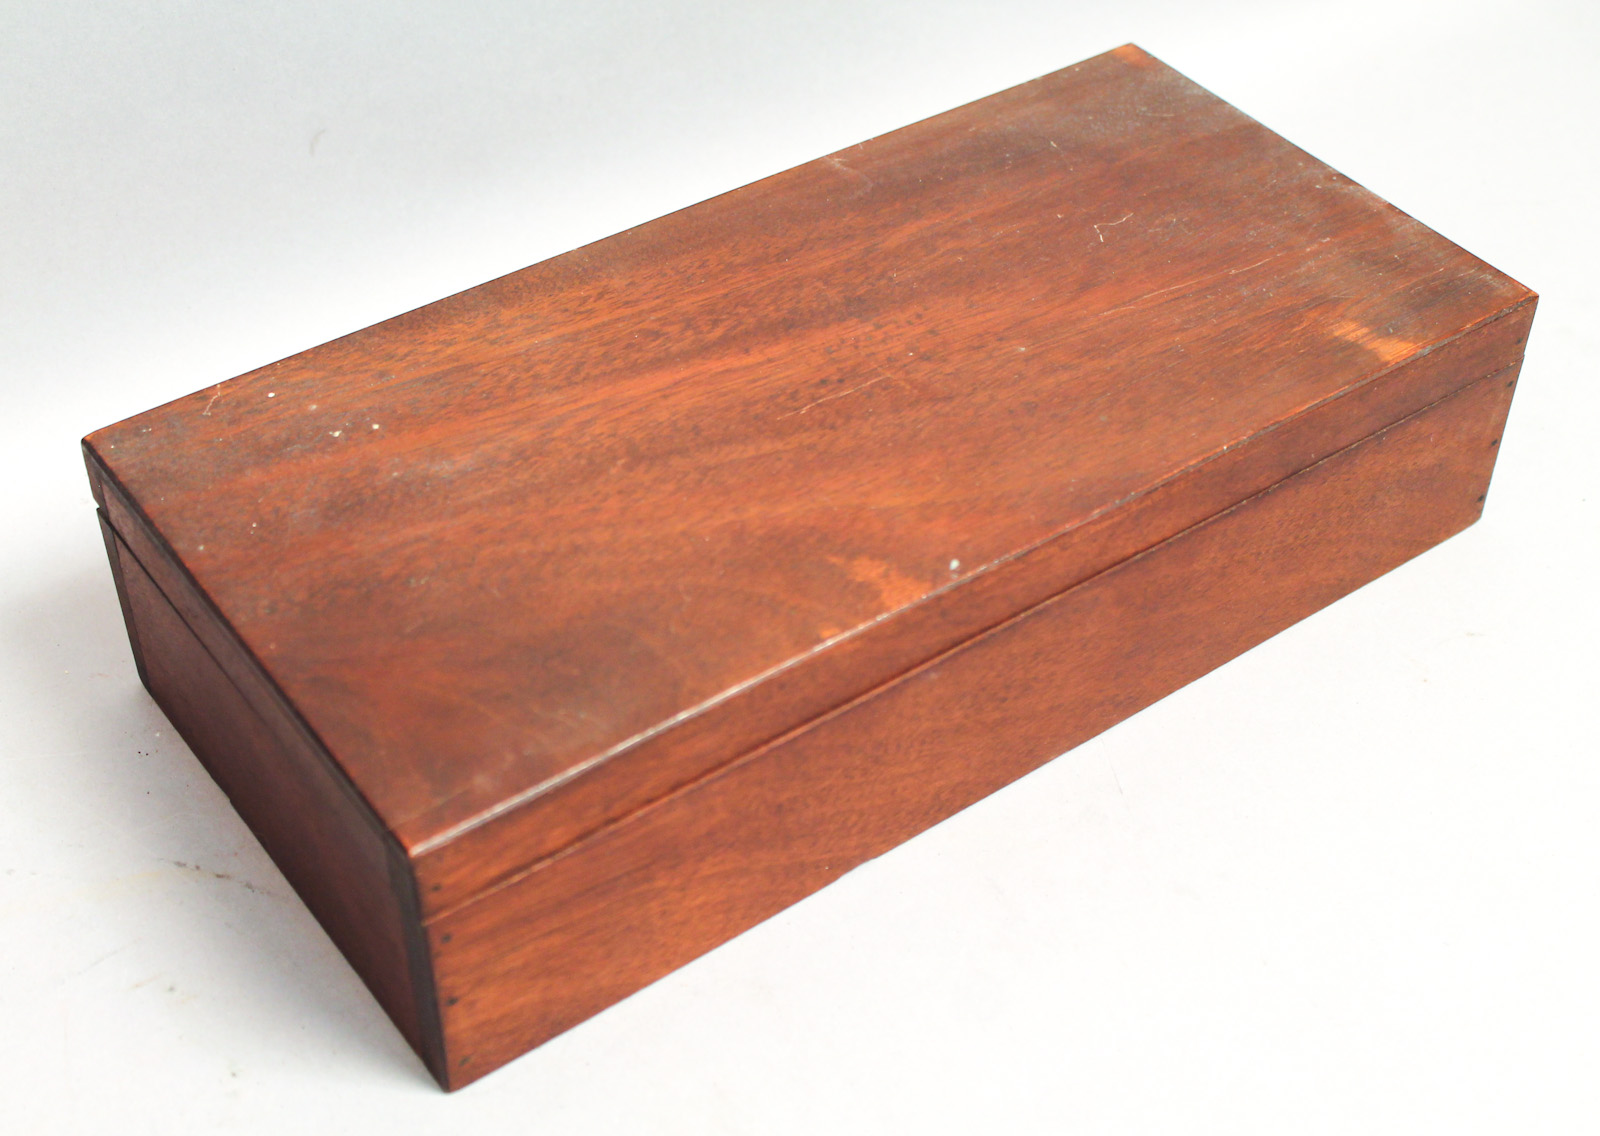 from Lance dating antique wooden boxes